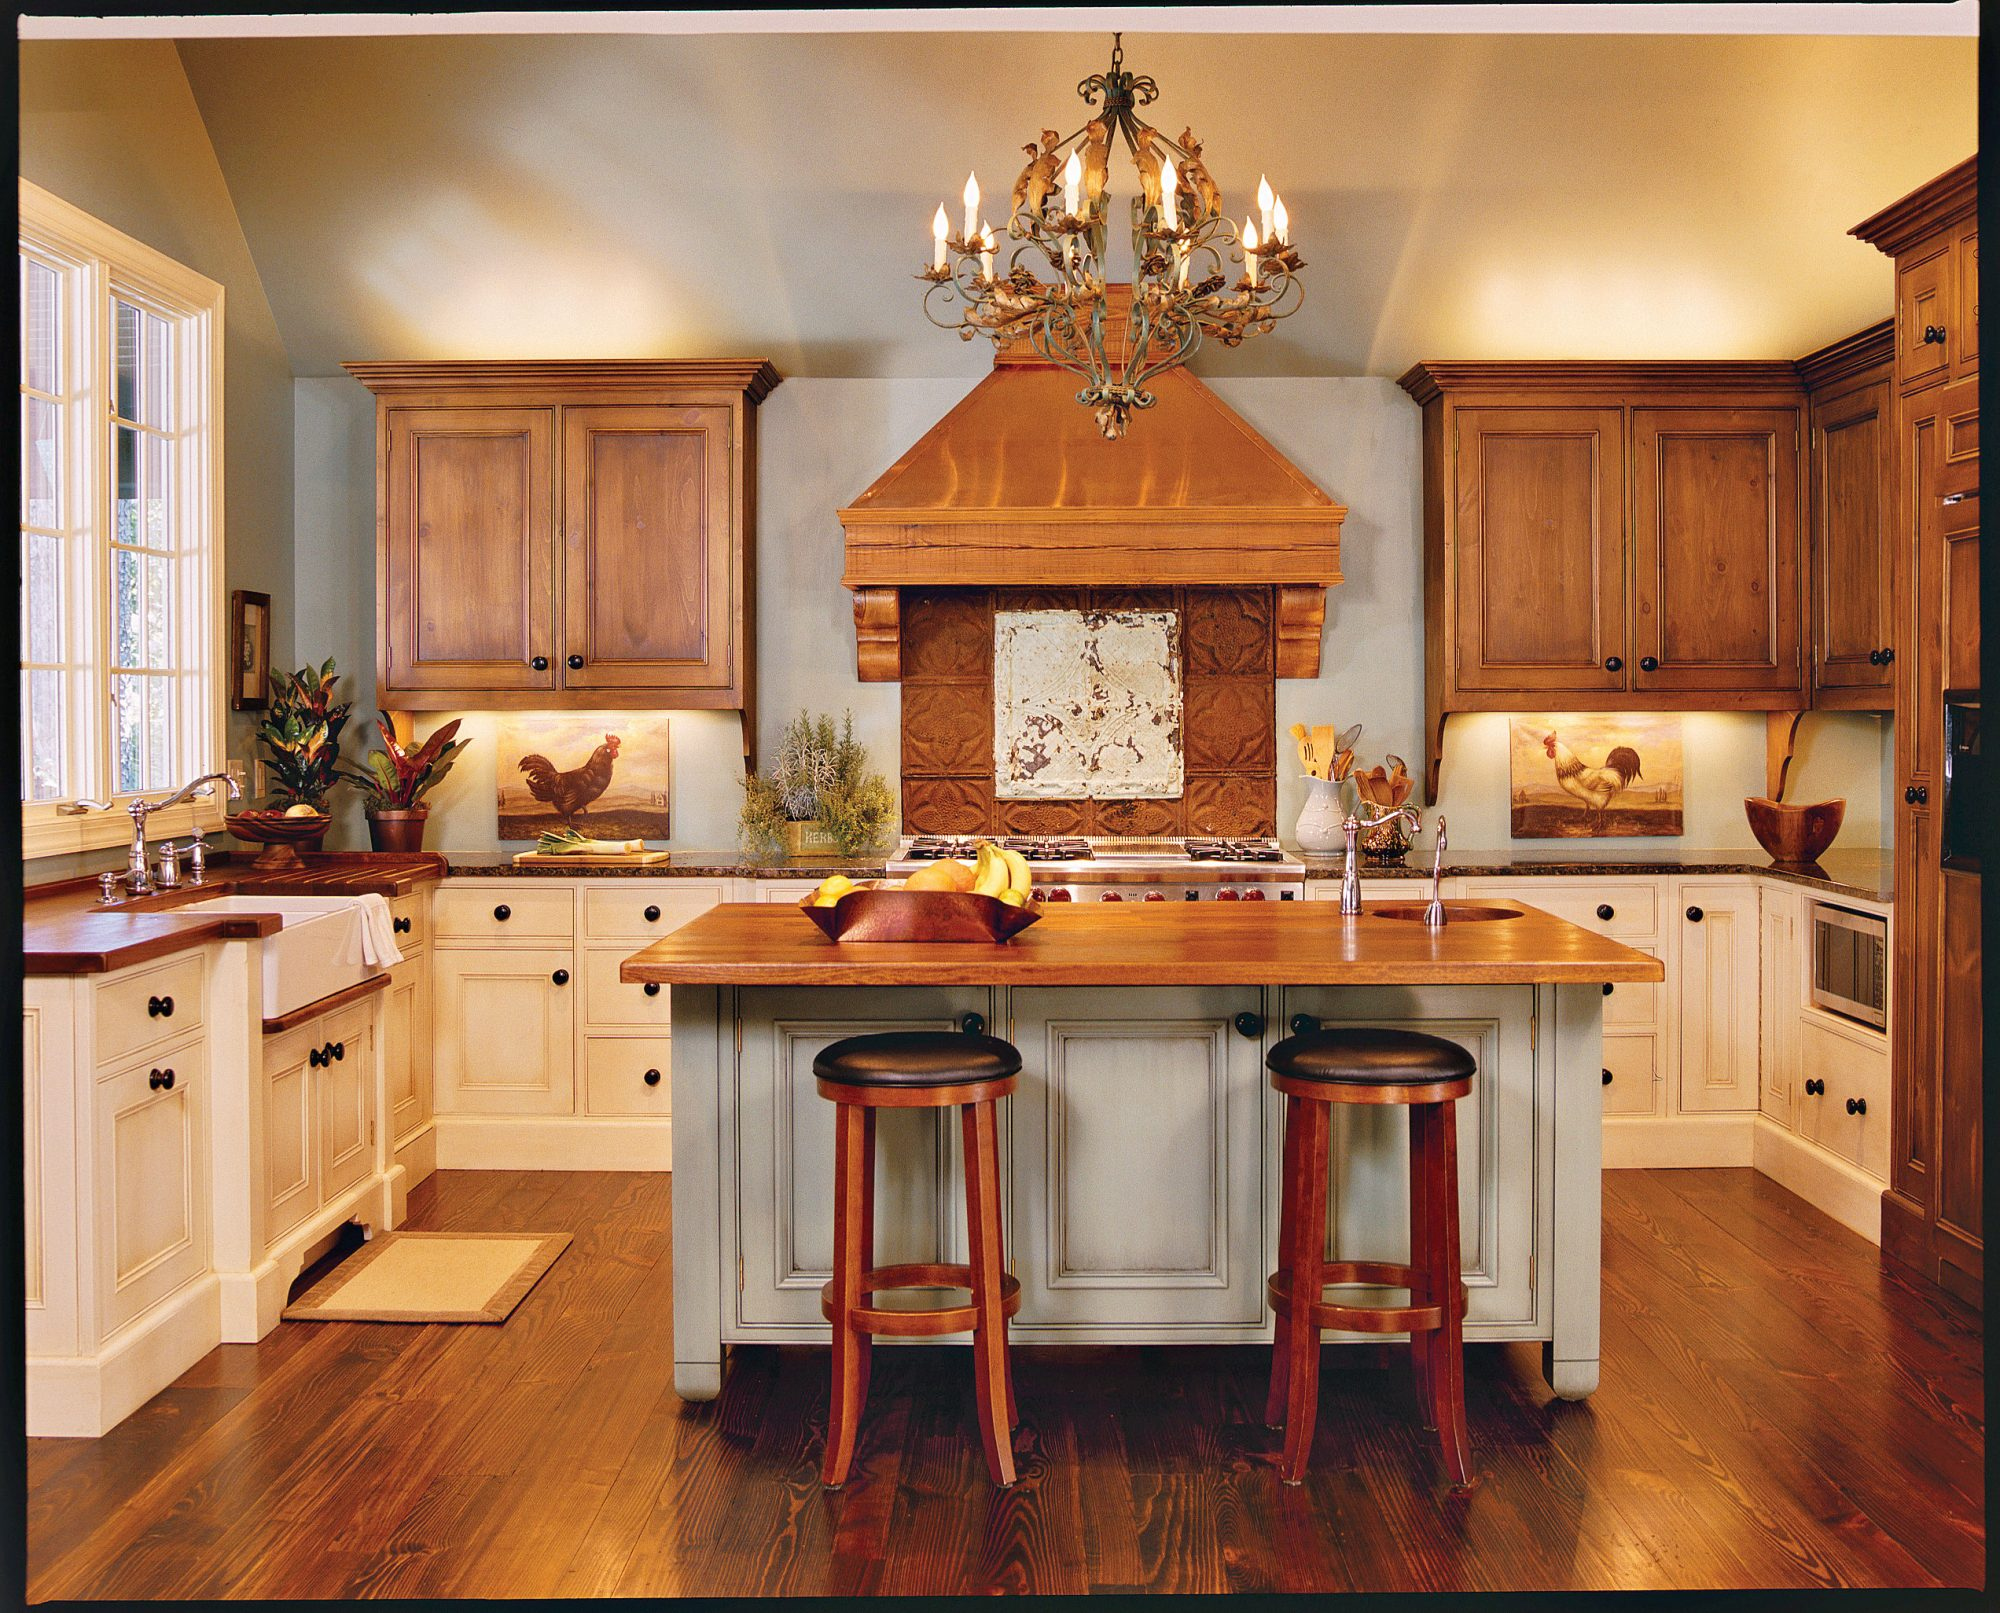 Our Best Cottage Kitchens - Southern Living Country Cabin Kitchen Color Ideas on harvest kitchen ideas, cabin kitchen island ideas, mountain cabin kitchen ideas, log cabin interior design ideas, country blue kitchen ideas, modern cabin kitchen ideas, country garden kitchen ideas, cabin kitchen cabinet ideas, repurposed kitchen ideas, log house kitchen ideas, for small kitchens kitchen ideas, small space kitchen ideas, tiny kitchen ideas, log cabin kitchen ideas, tiny log cabin door ideas, victorian kitchen ideas, country craftsman kitchen ideas, 2015 kitchen ideas, vintage small kitchen ideas, small cabin kitchen ideas,